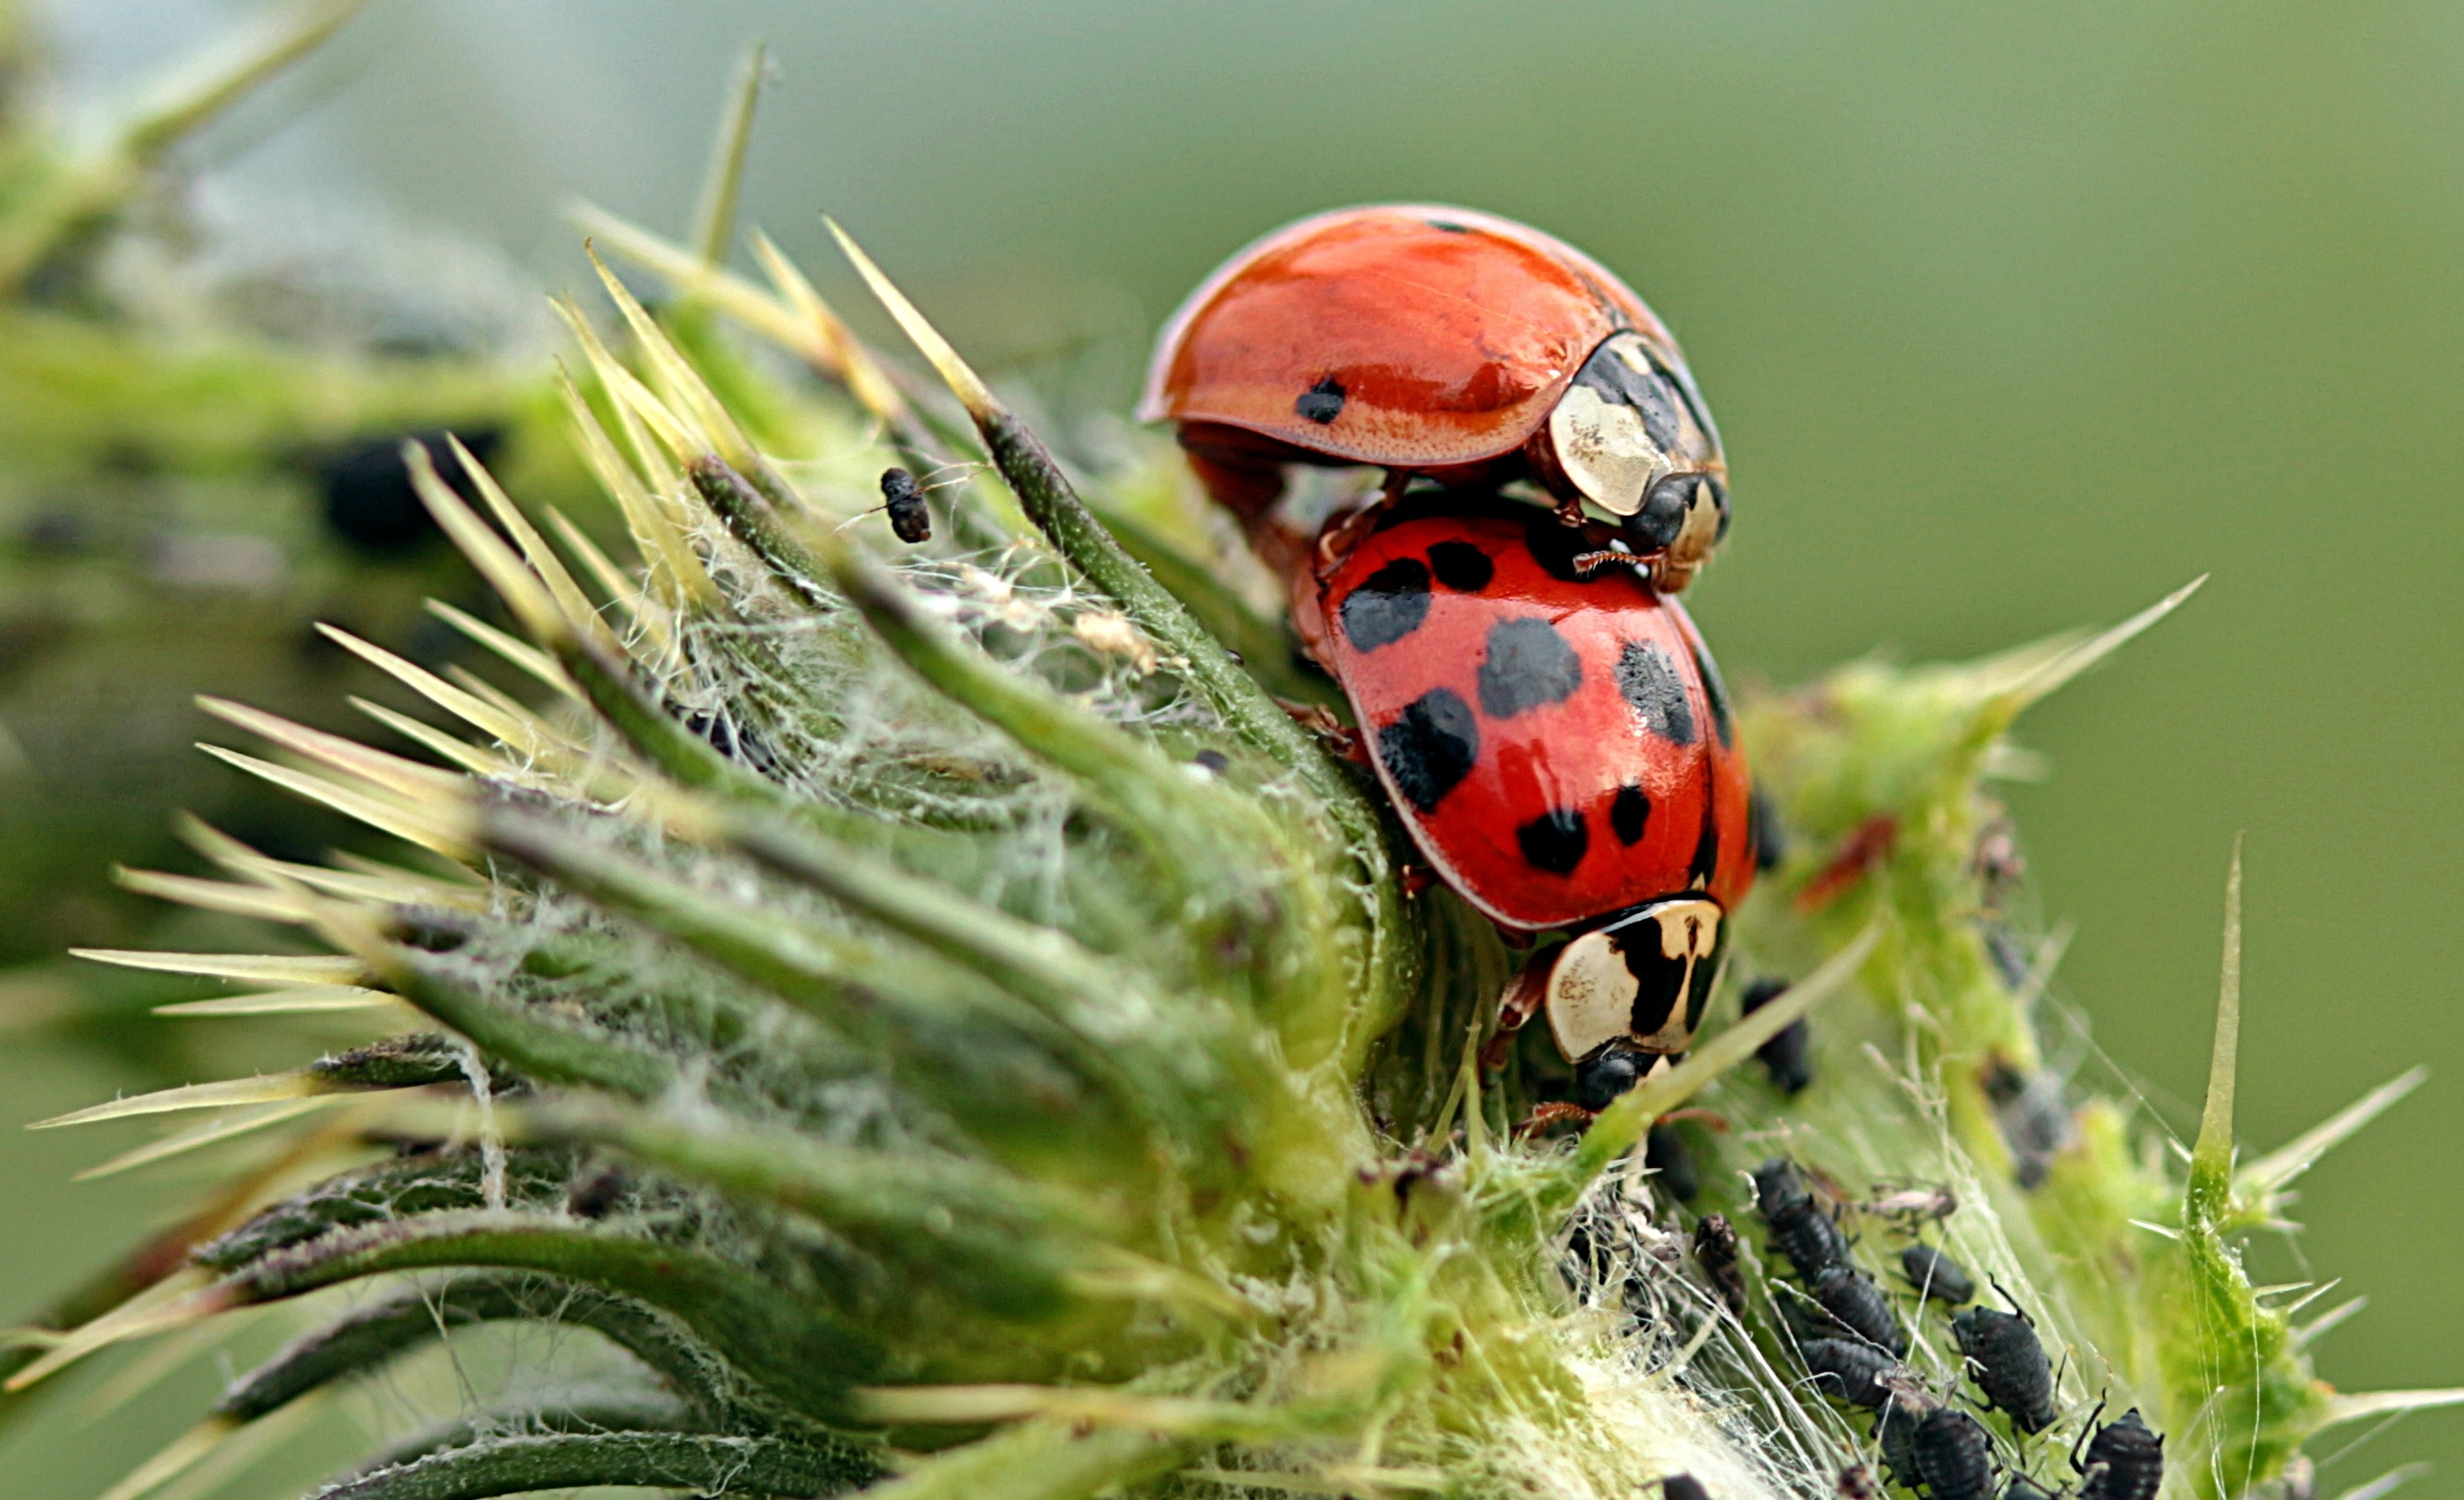 57980 download wallpaper Macro, Ladybugs, Plant, Insects screensavers and pictures for free